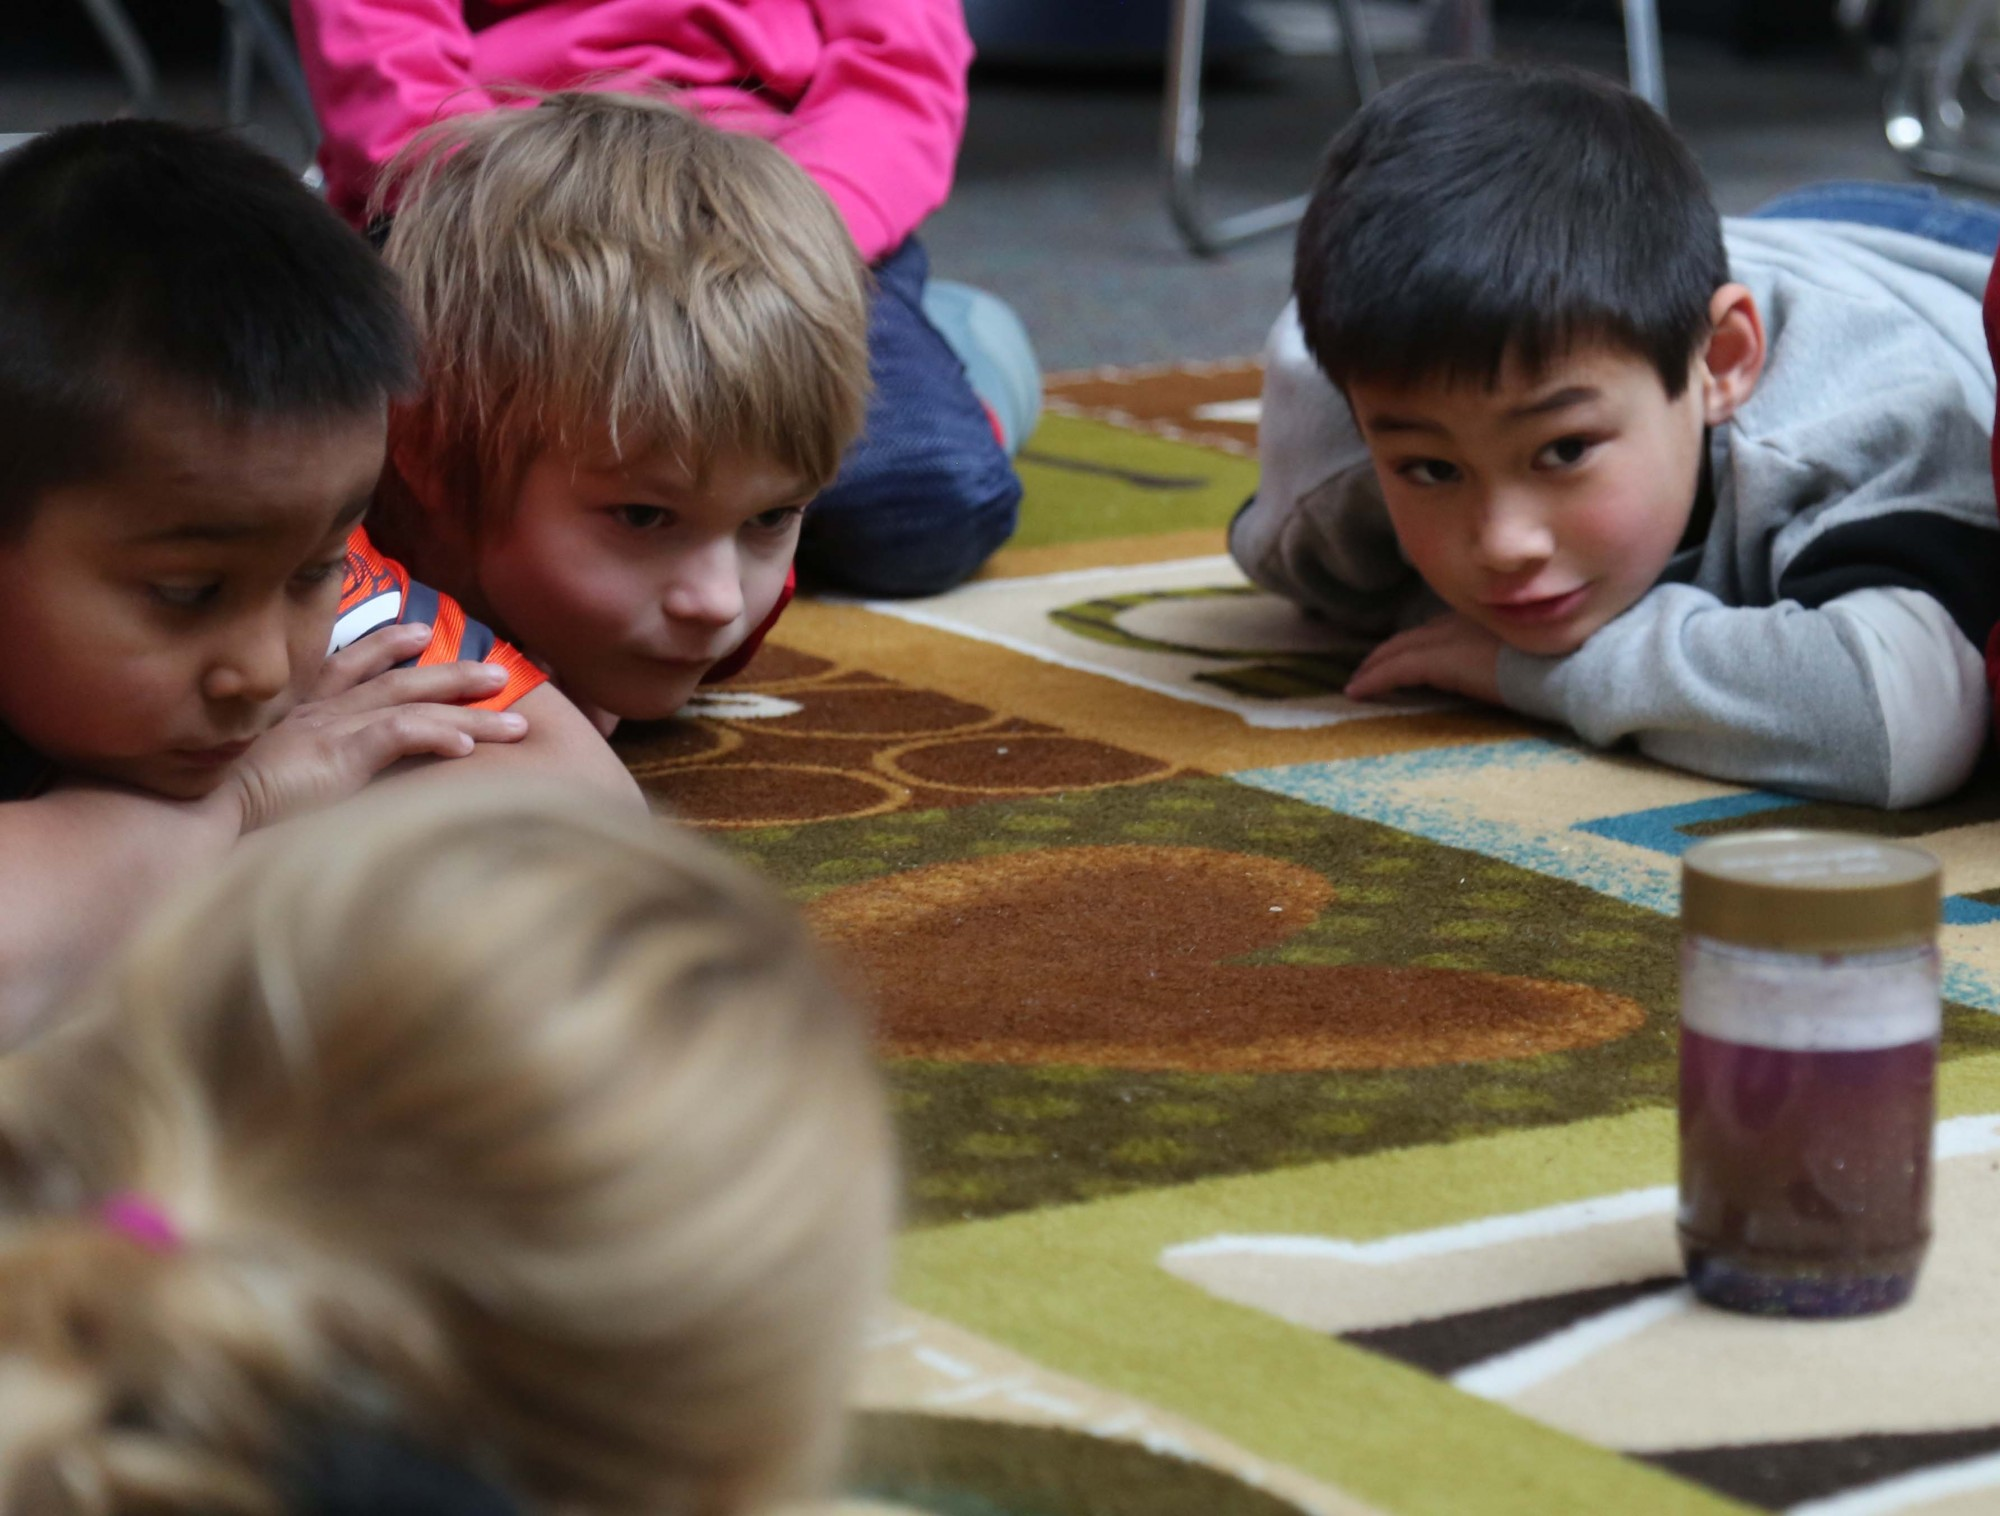 Olander Elementary students lay on the floor looking at a jar with purple glitter.